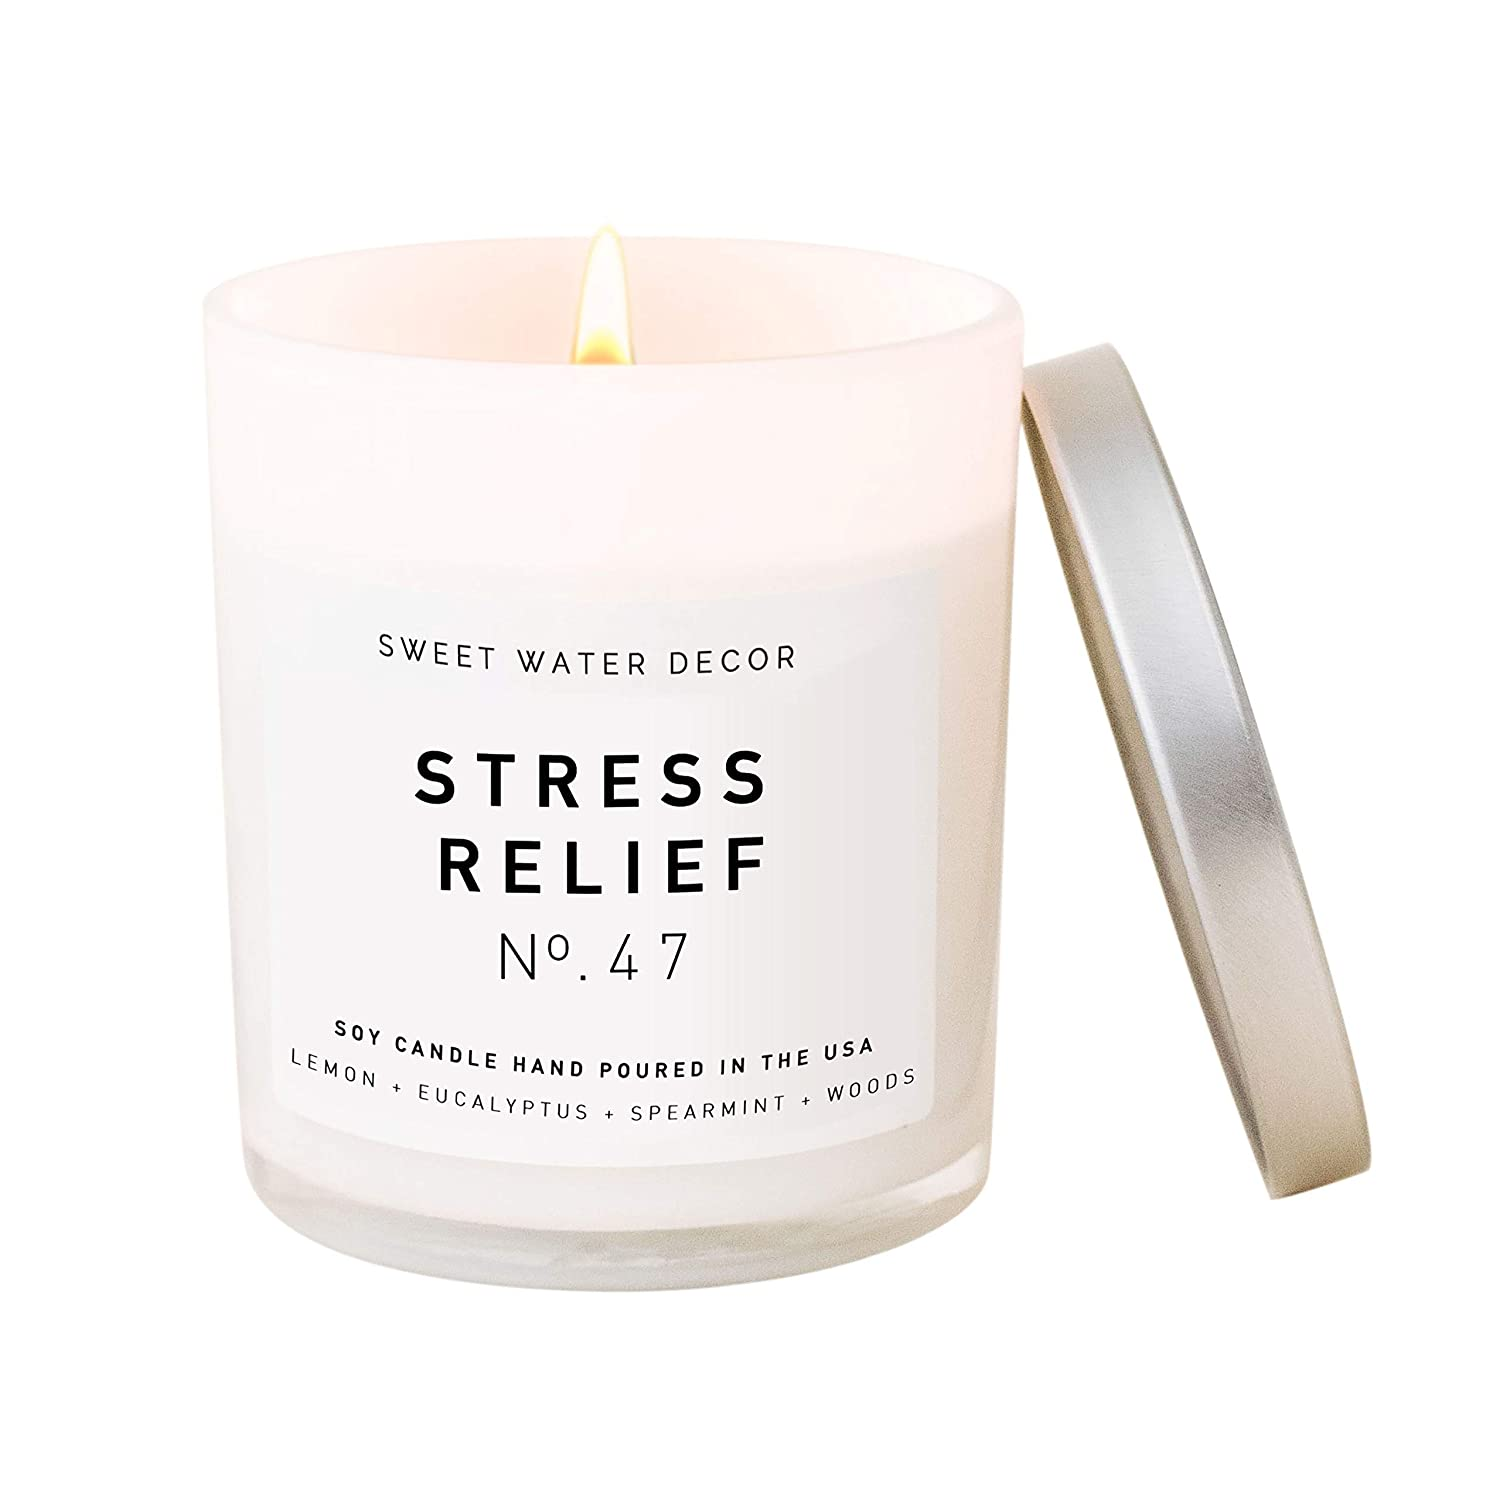 Sweet Water Decor Candle | Relaxing Spa Scented Soy Wax Candle for Home | 11oz White Glass Jar, 50 Hour Burn Time, Made in the USA (Stress Relief)